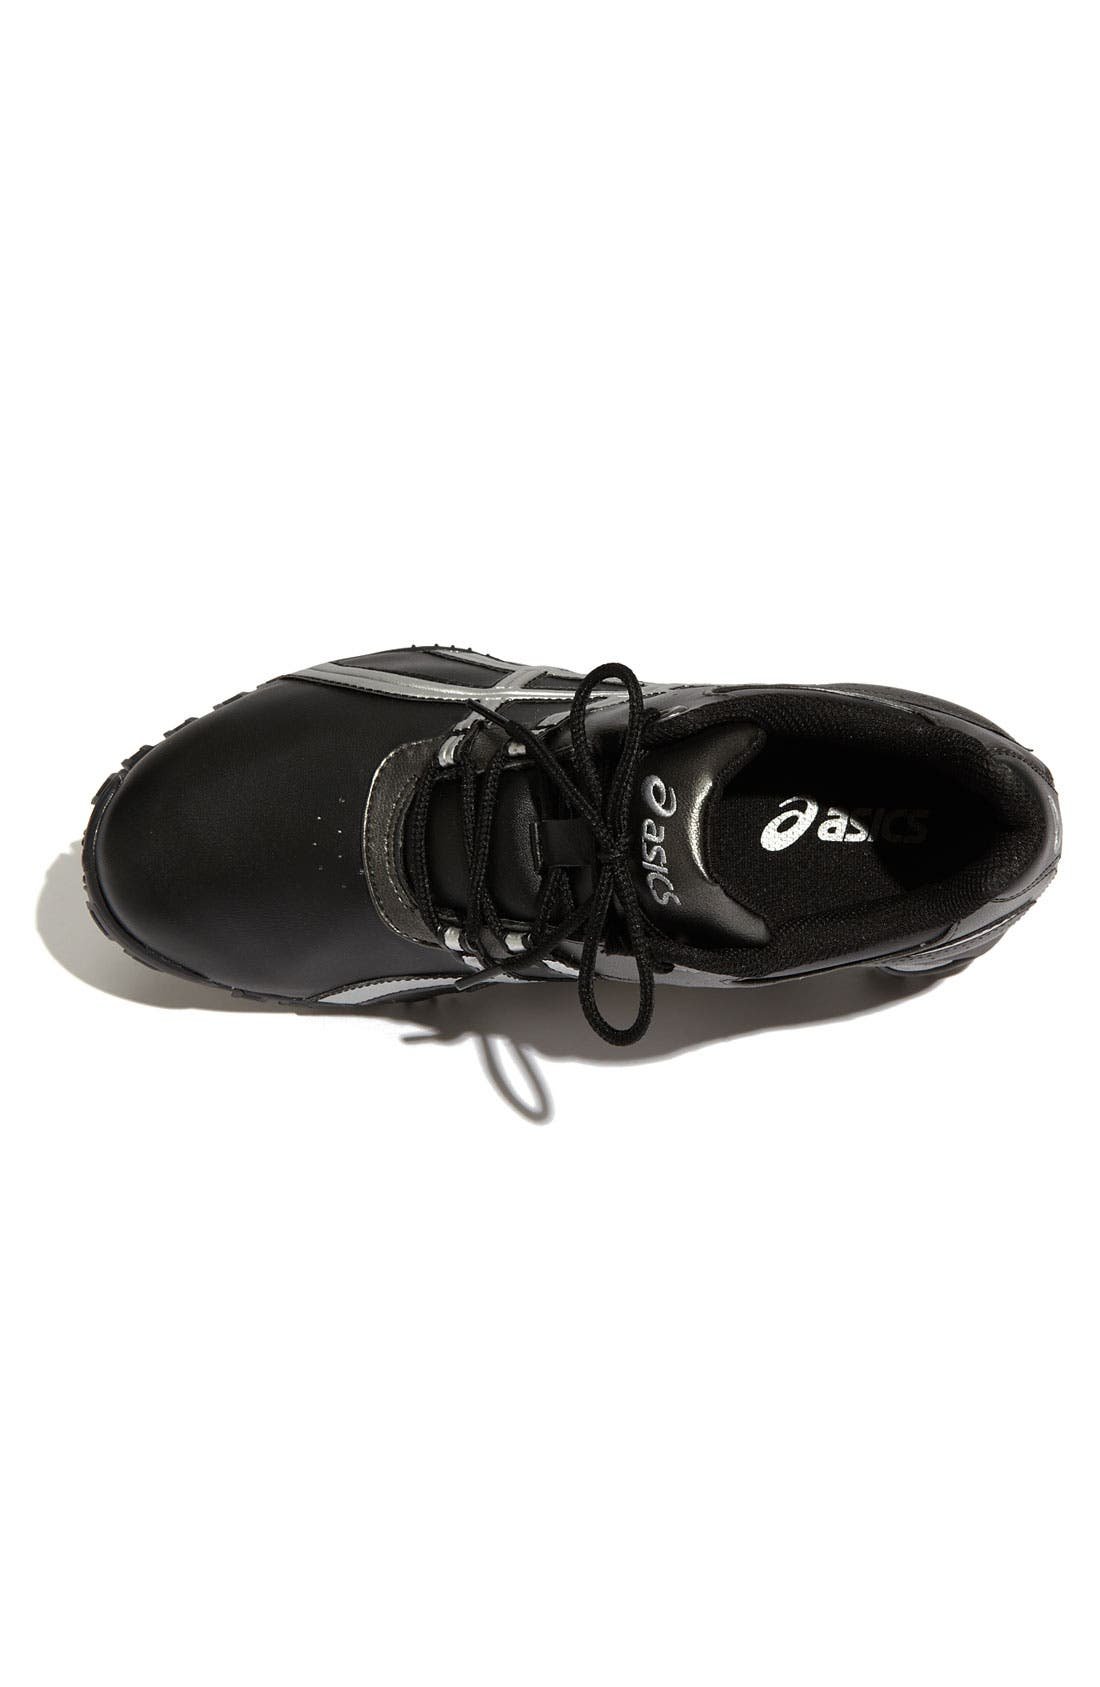 Alternate Image 3  - ASICS® 'GEL-Linksmaster™' Golf Shoe (Men)